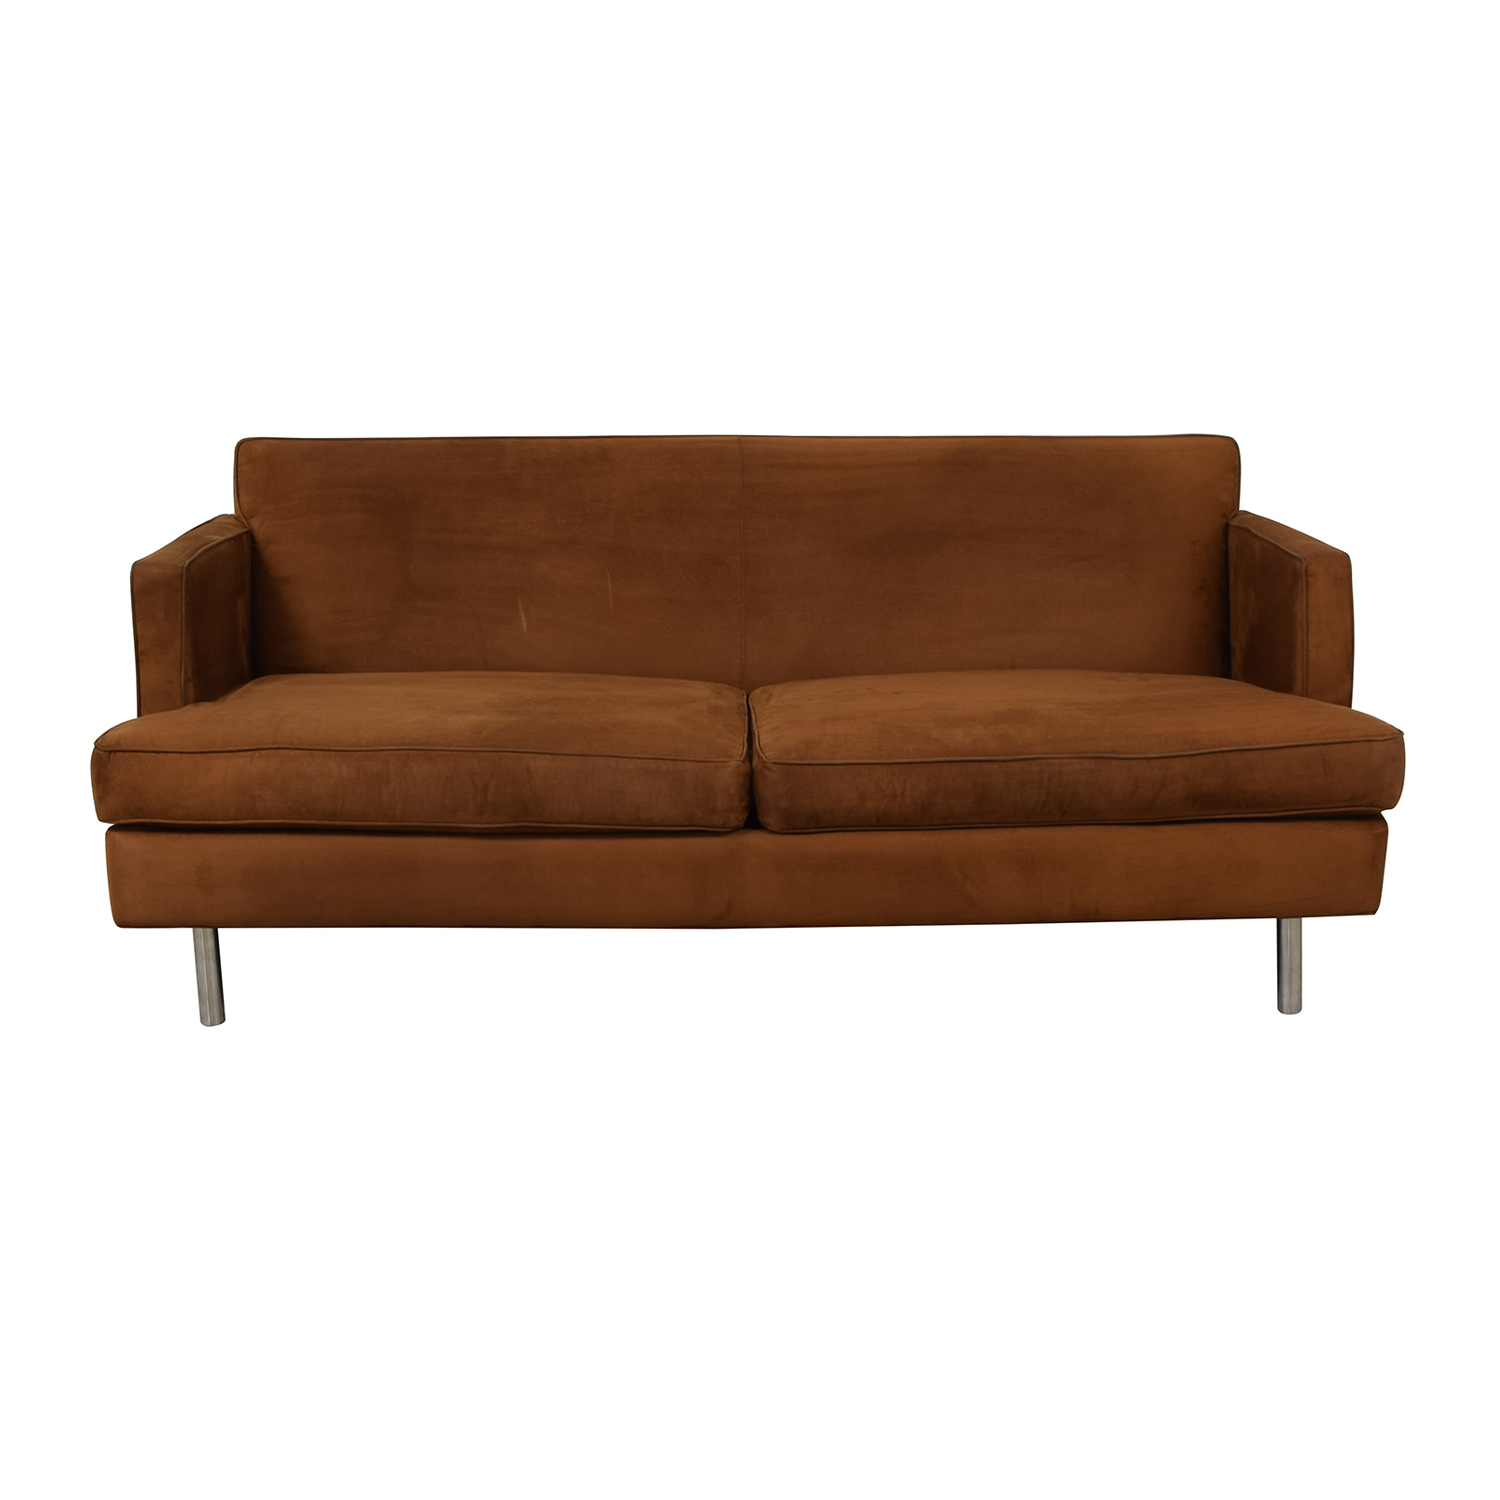 Rowe Furniture Rowe Furniture Two-Cushion Sofa